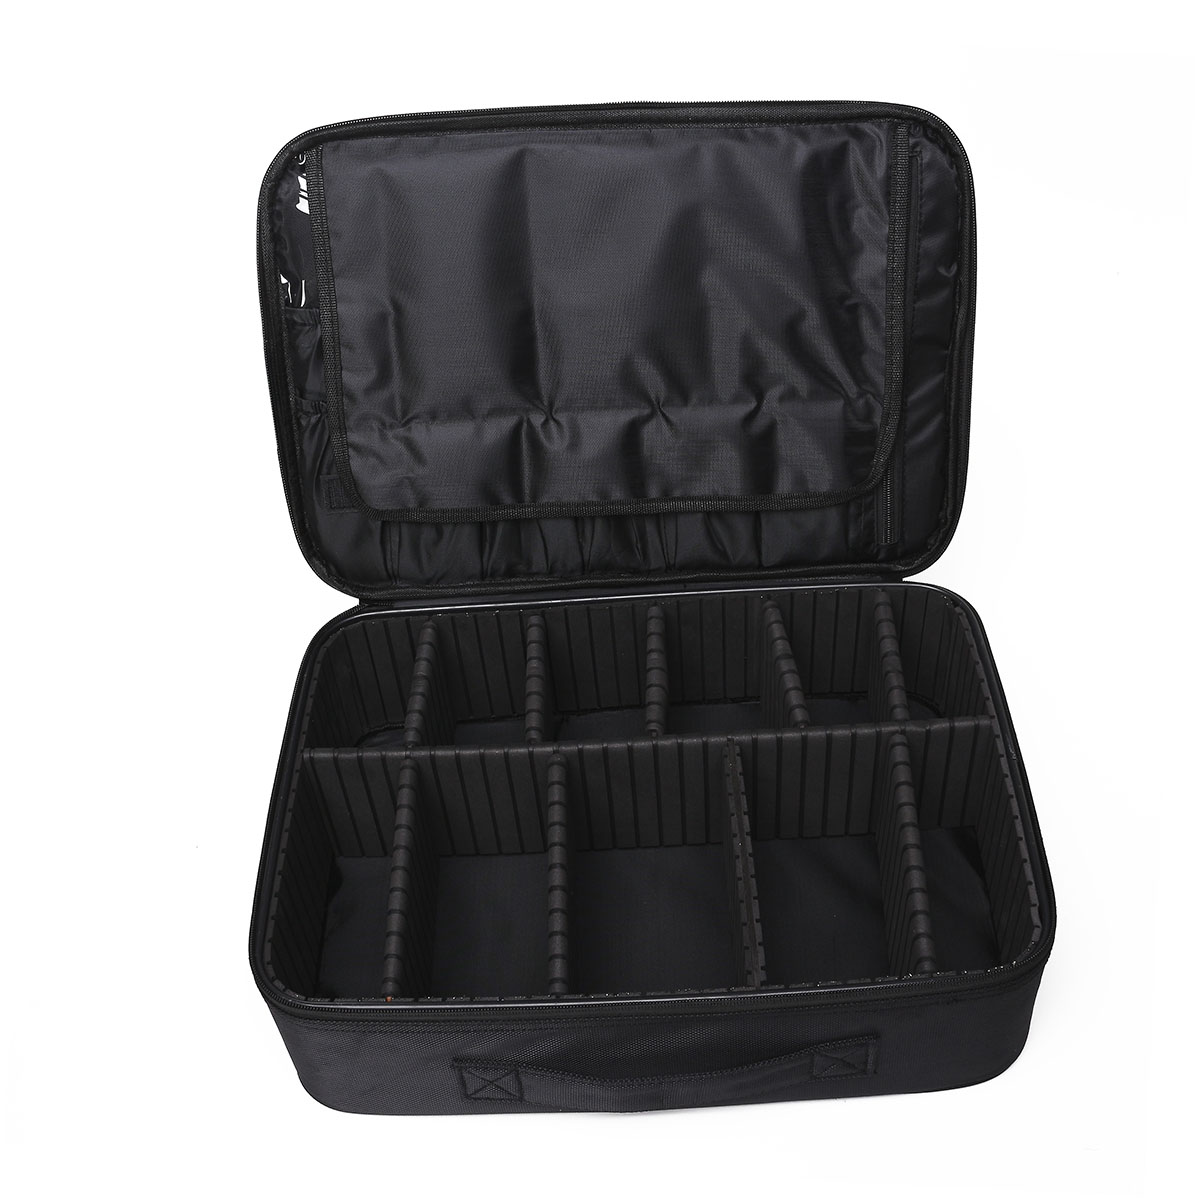 Detachable Travel Bag Toiletry Kit Portable Makeup Brushes Pouch Holder Storage Shoulder Bags